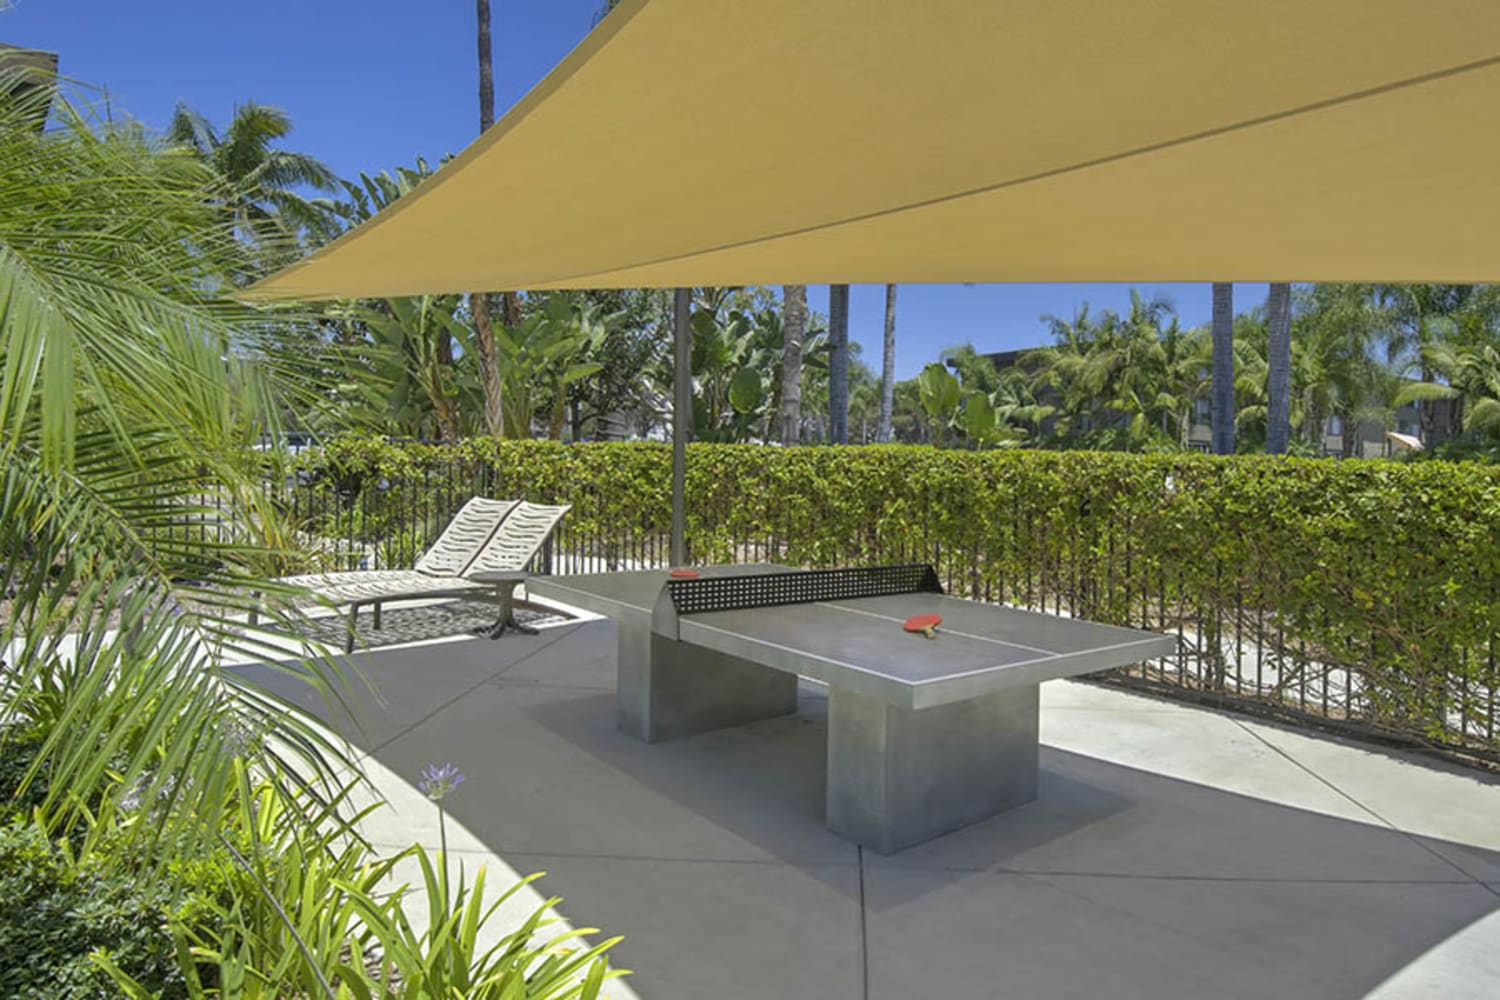 Outdoor table tennis table at UCA Apartment Homes in Fullerton, California